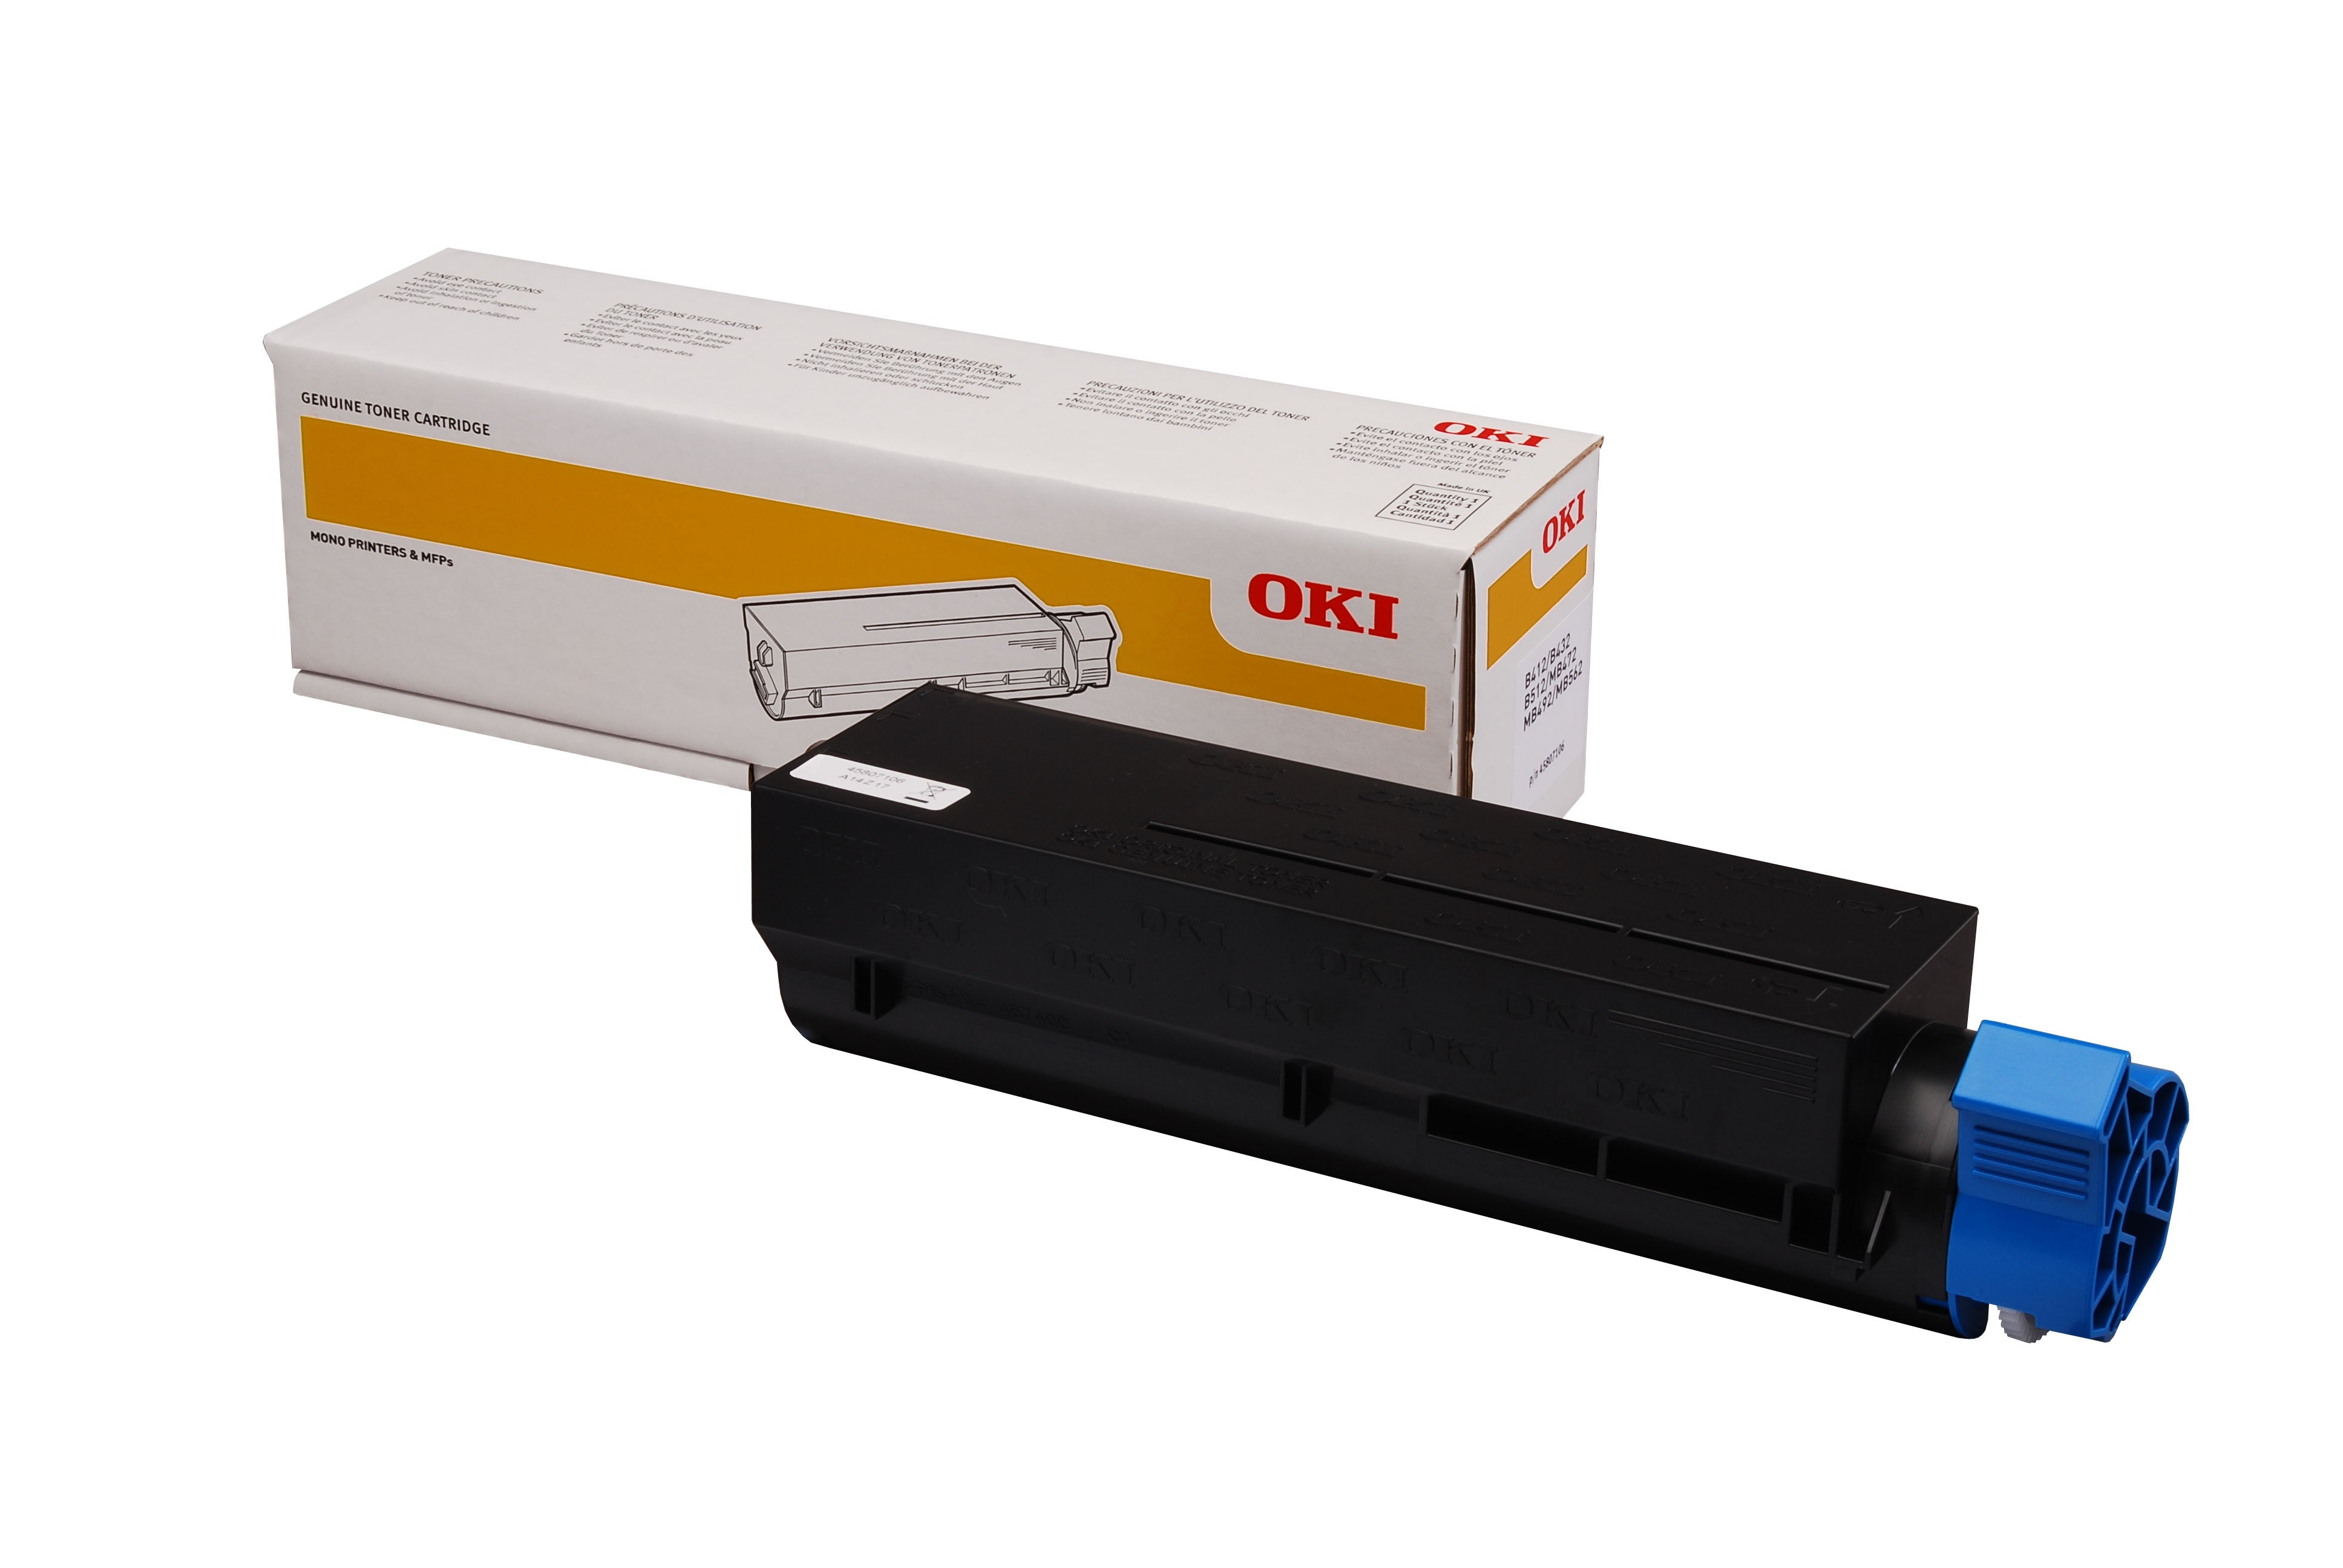 OKI B512dn Black Toner (3,000 Pages) 45807103